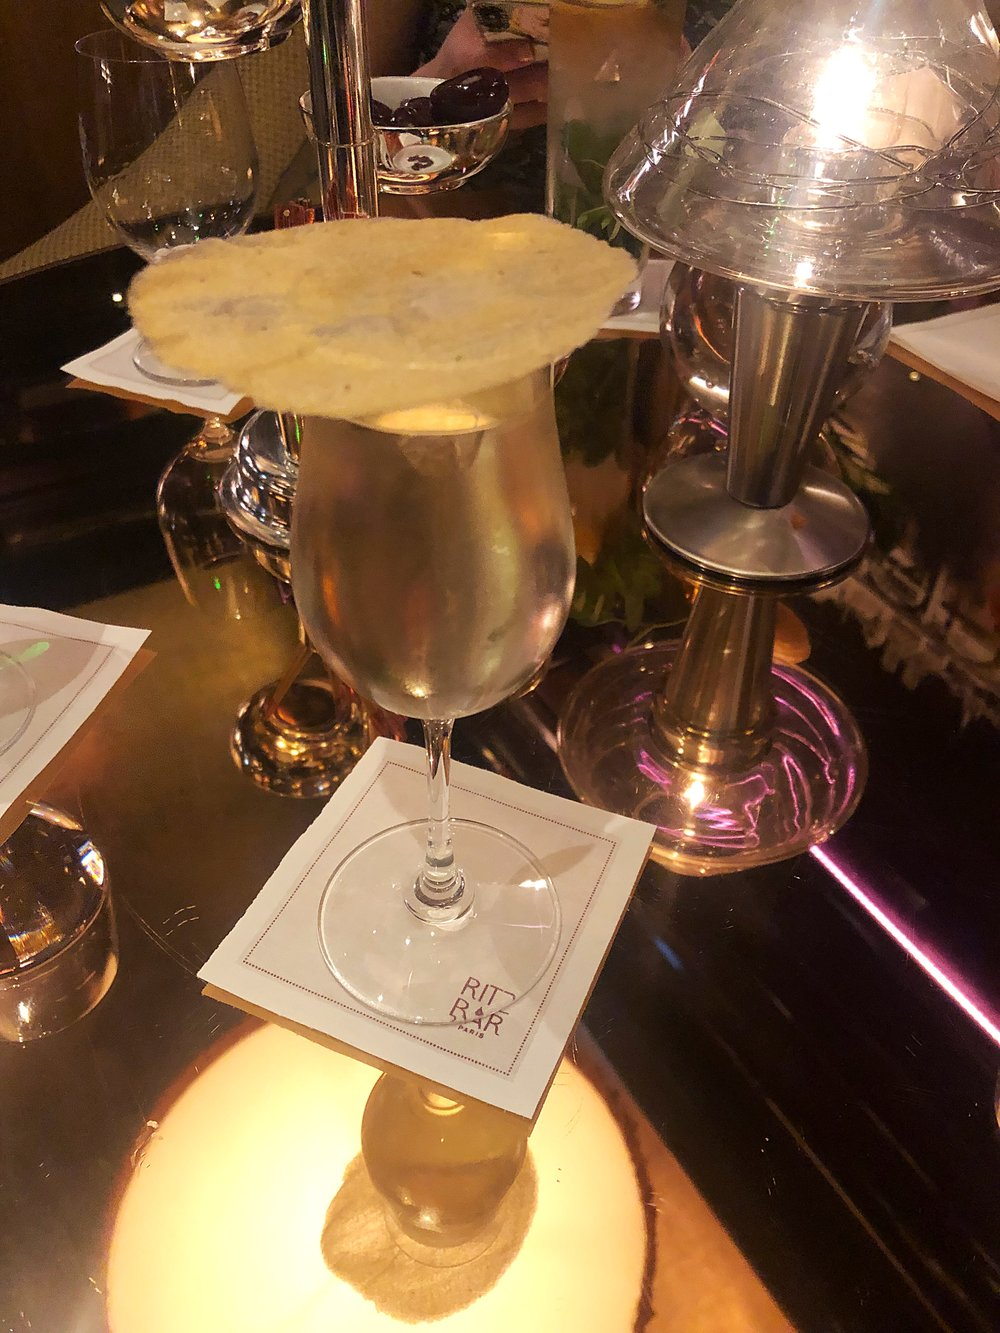 A 28 euro Gimlet at the Ritz